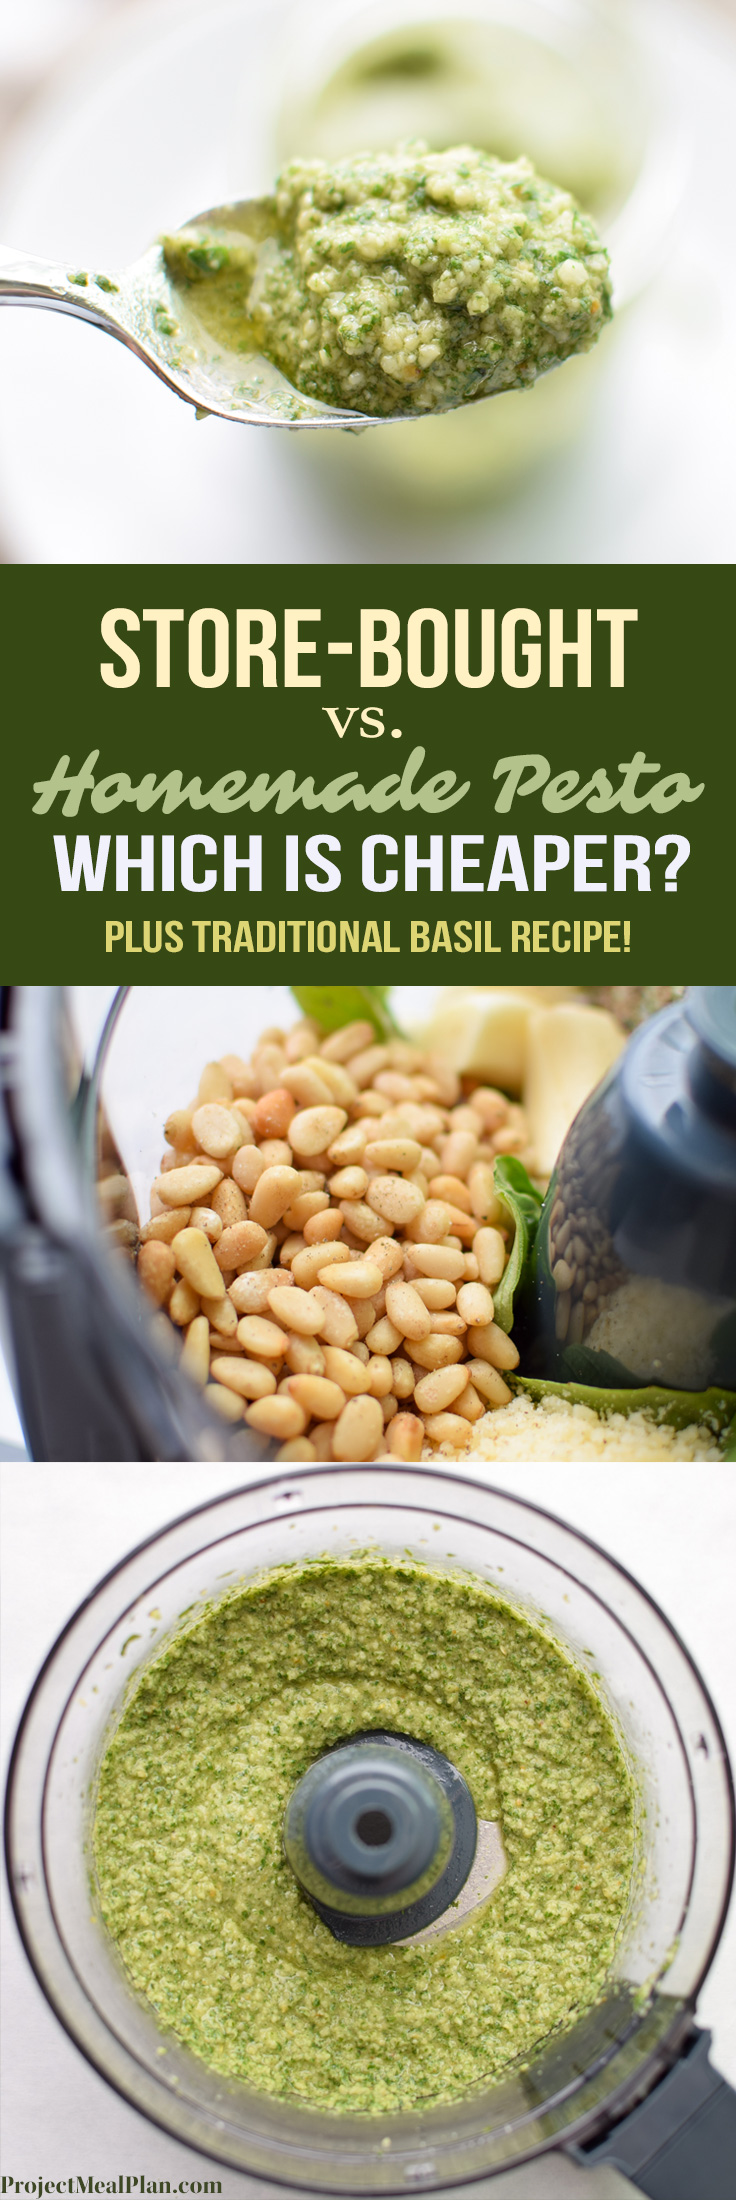 Store-Bought Vs. Homemade Pesto: Which is Cheaper?